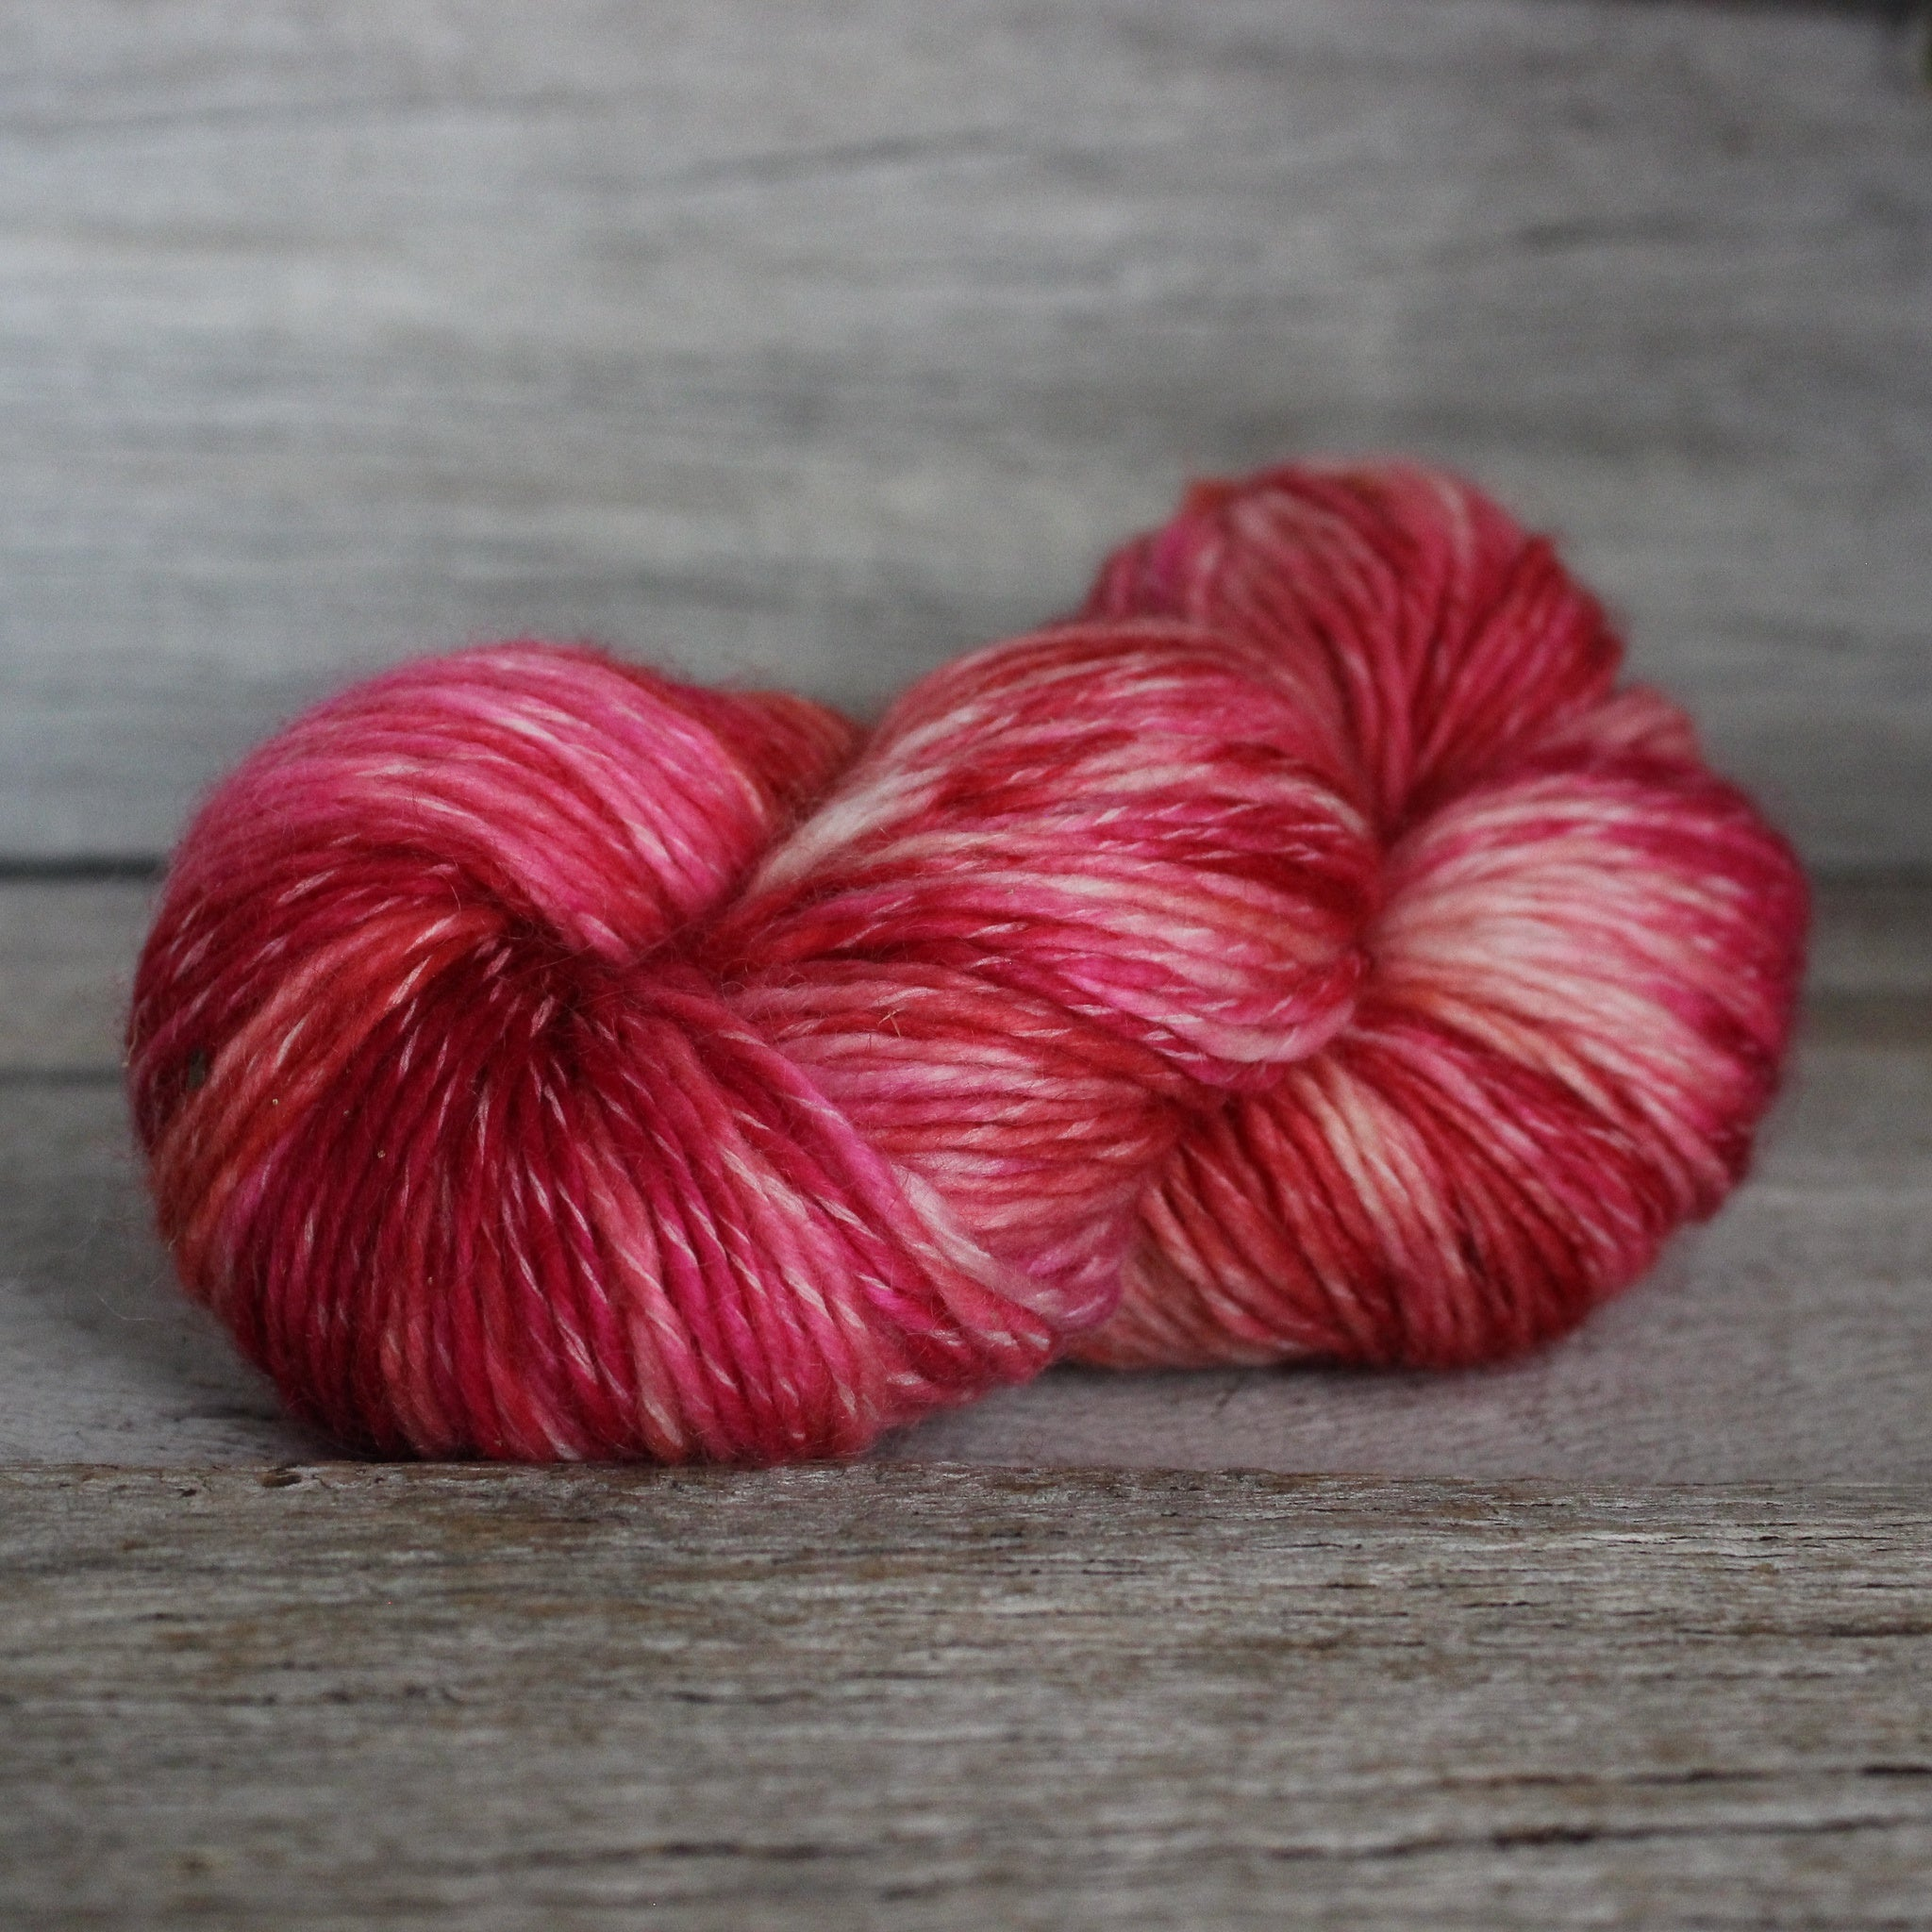 Yarn : Hand-dyed Kid Merino DK 'Scissors'